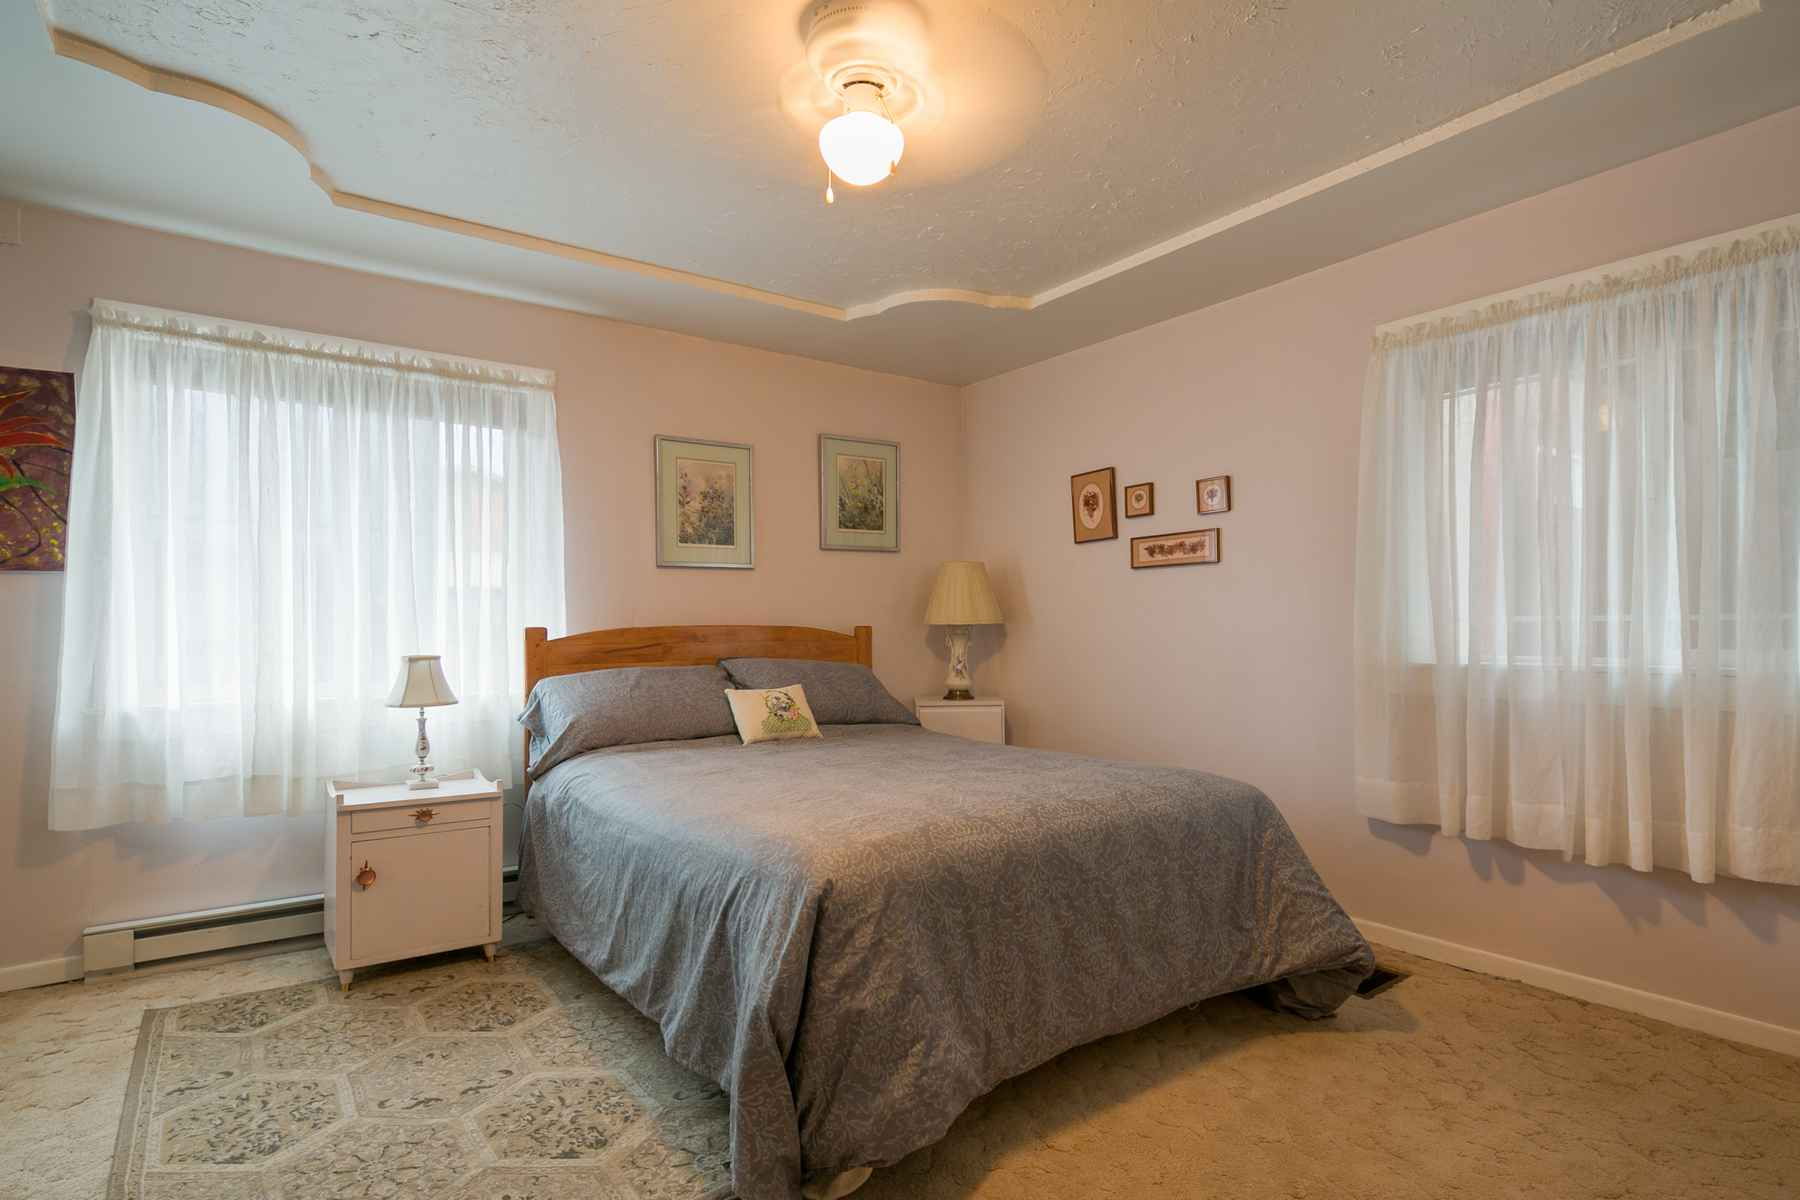 Additional photo for property listing at Endless Potential Bellevue Home 413 S. Main St 贝尔维尤, 爱达荷州 83333 美国